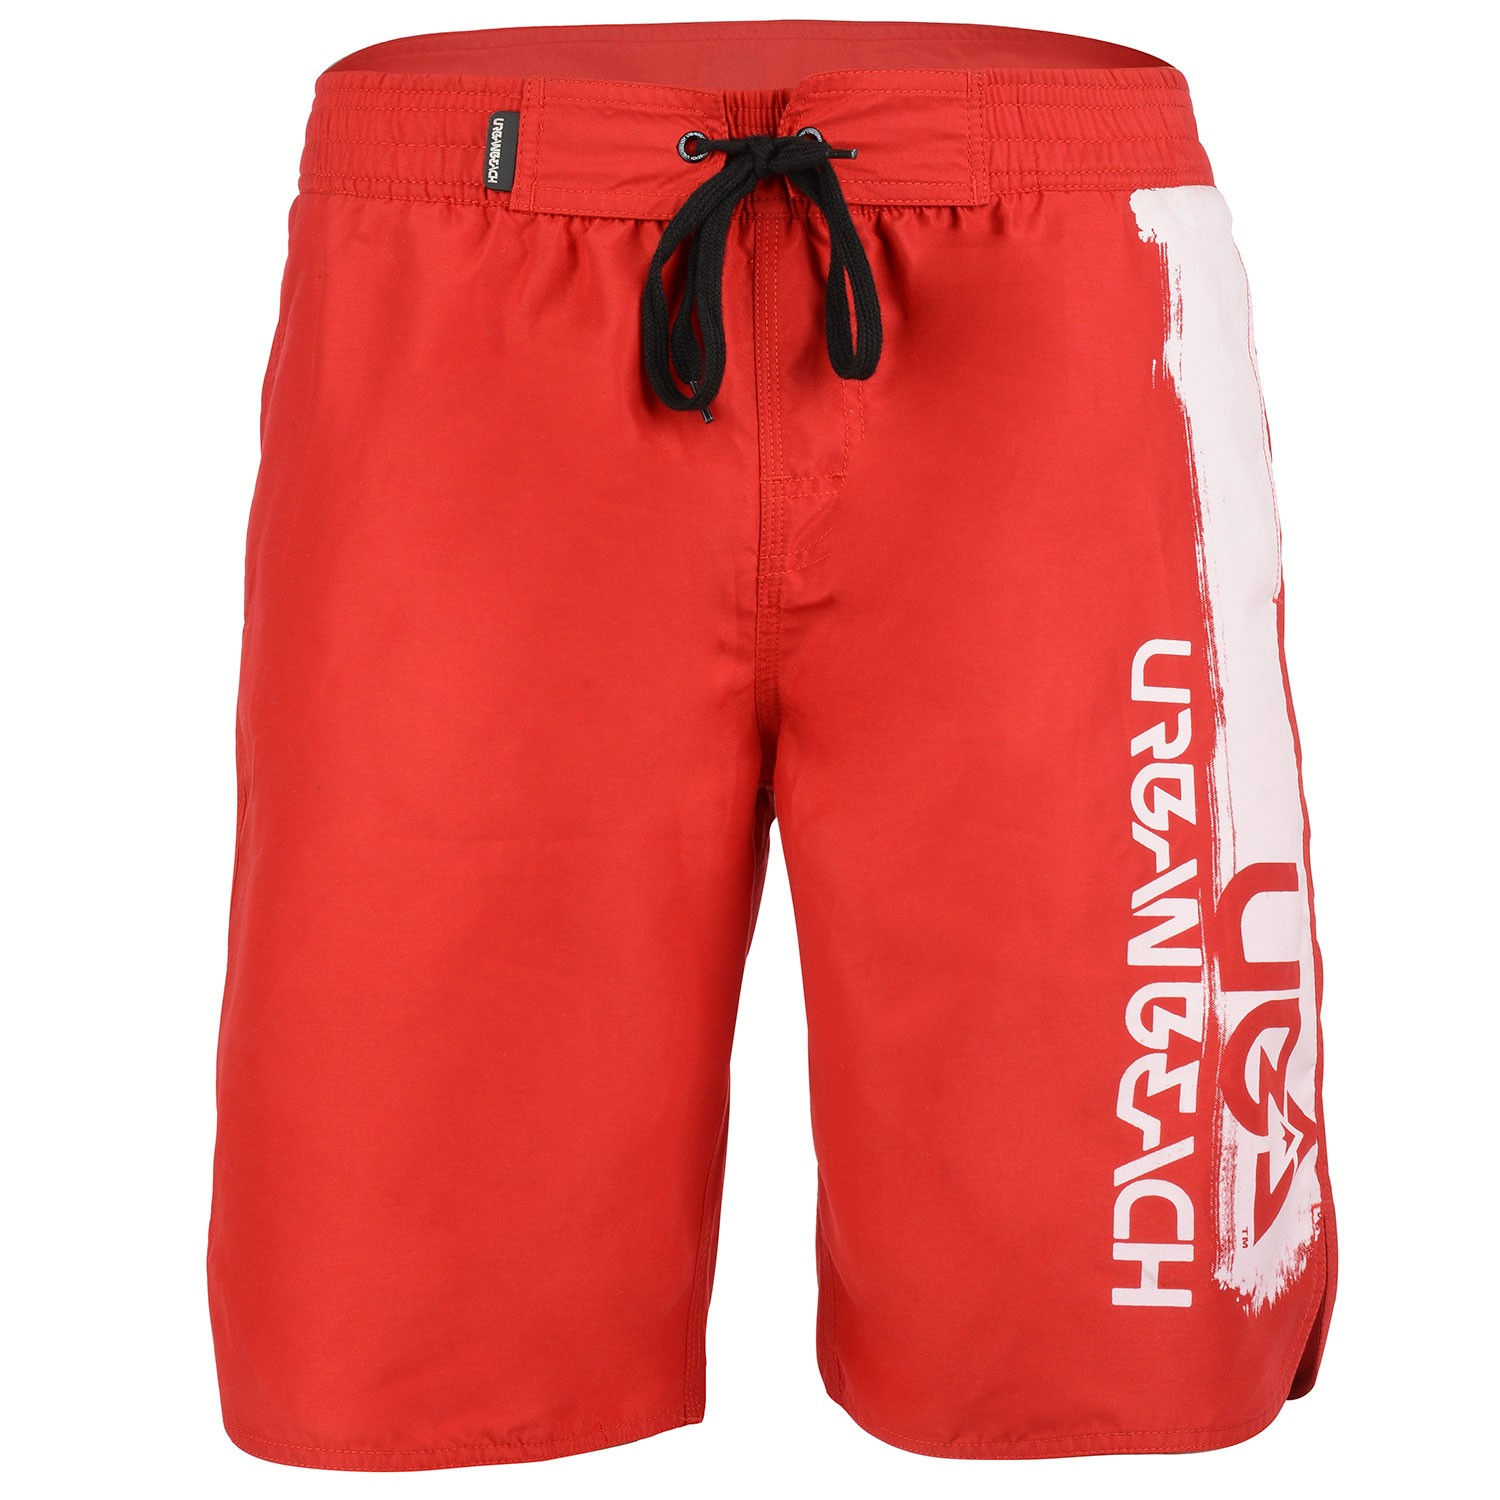 Mens Red Board Shorts With White Logo Hossegor Free